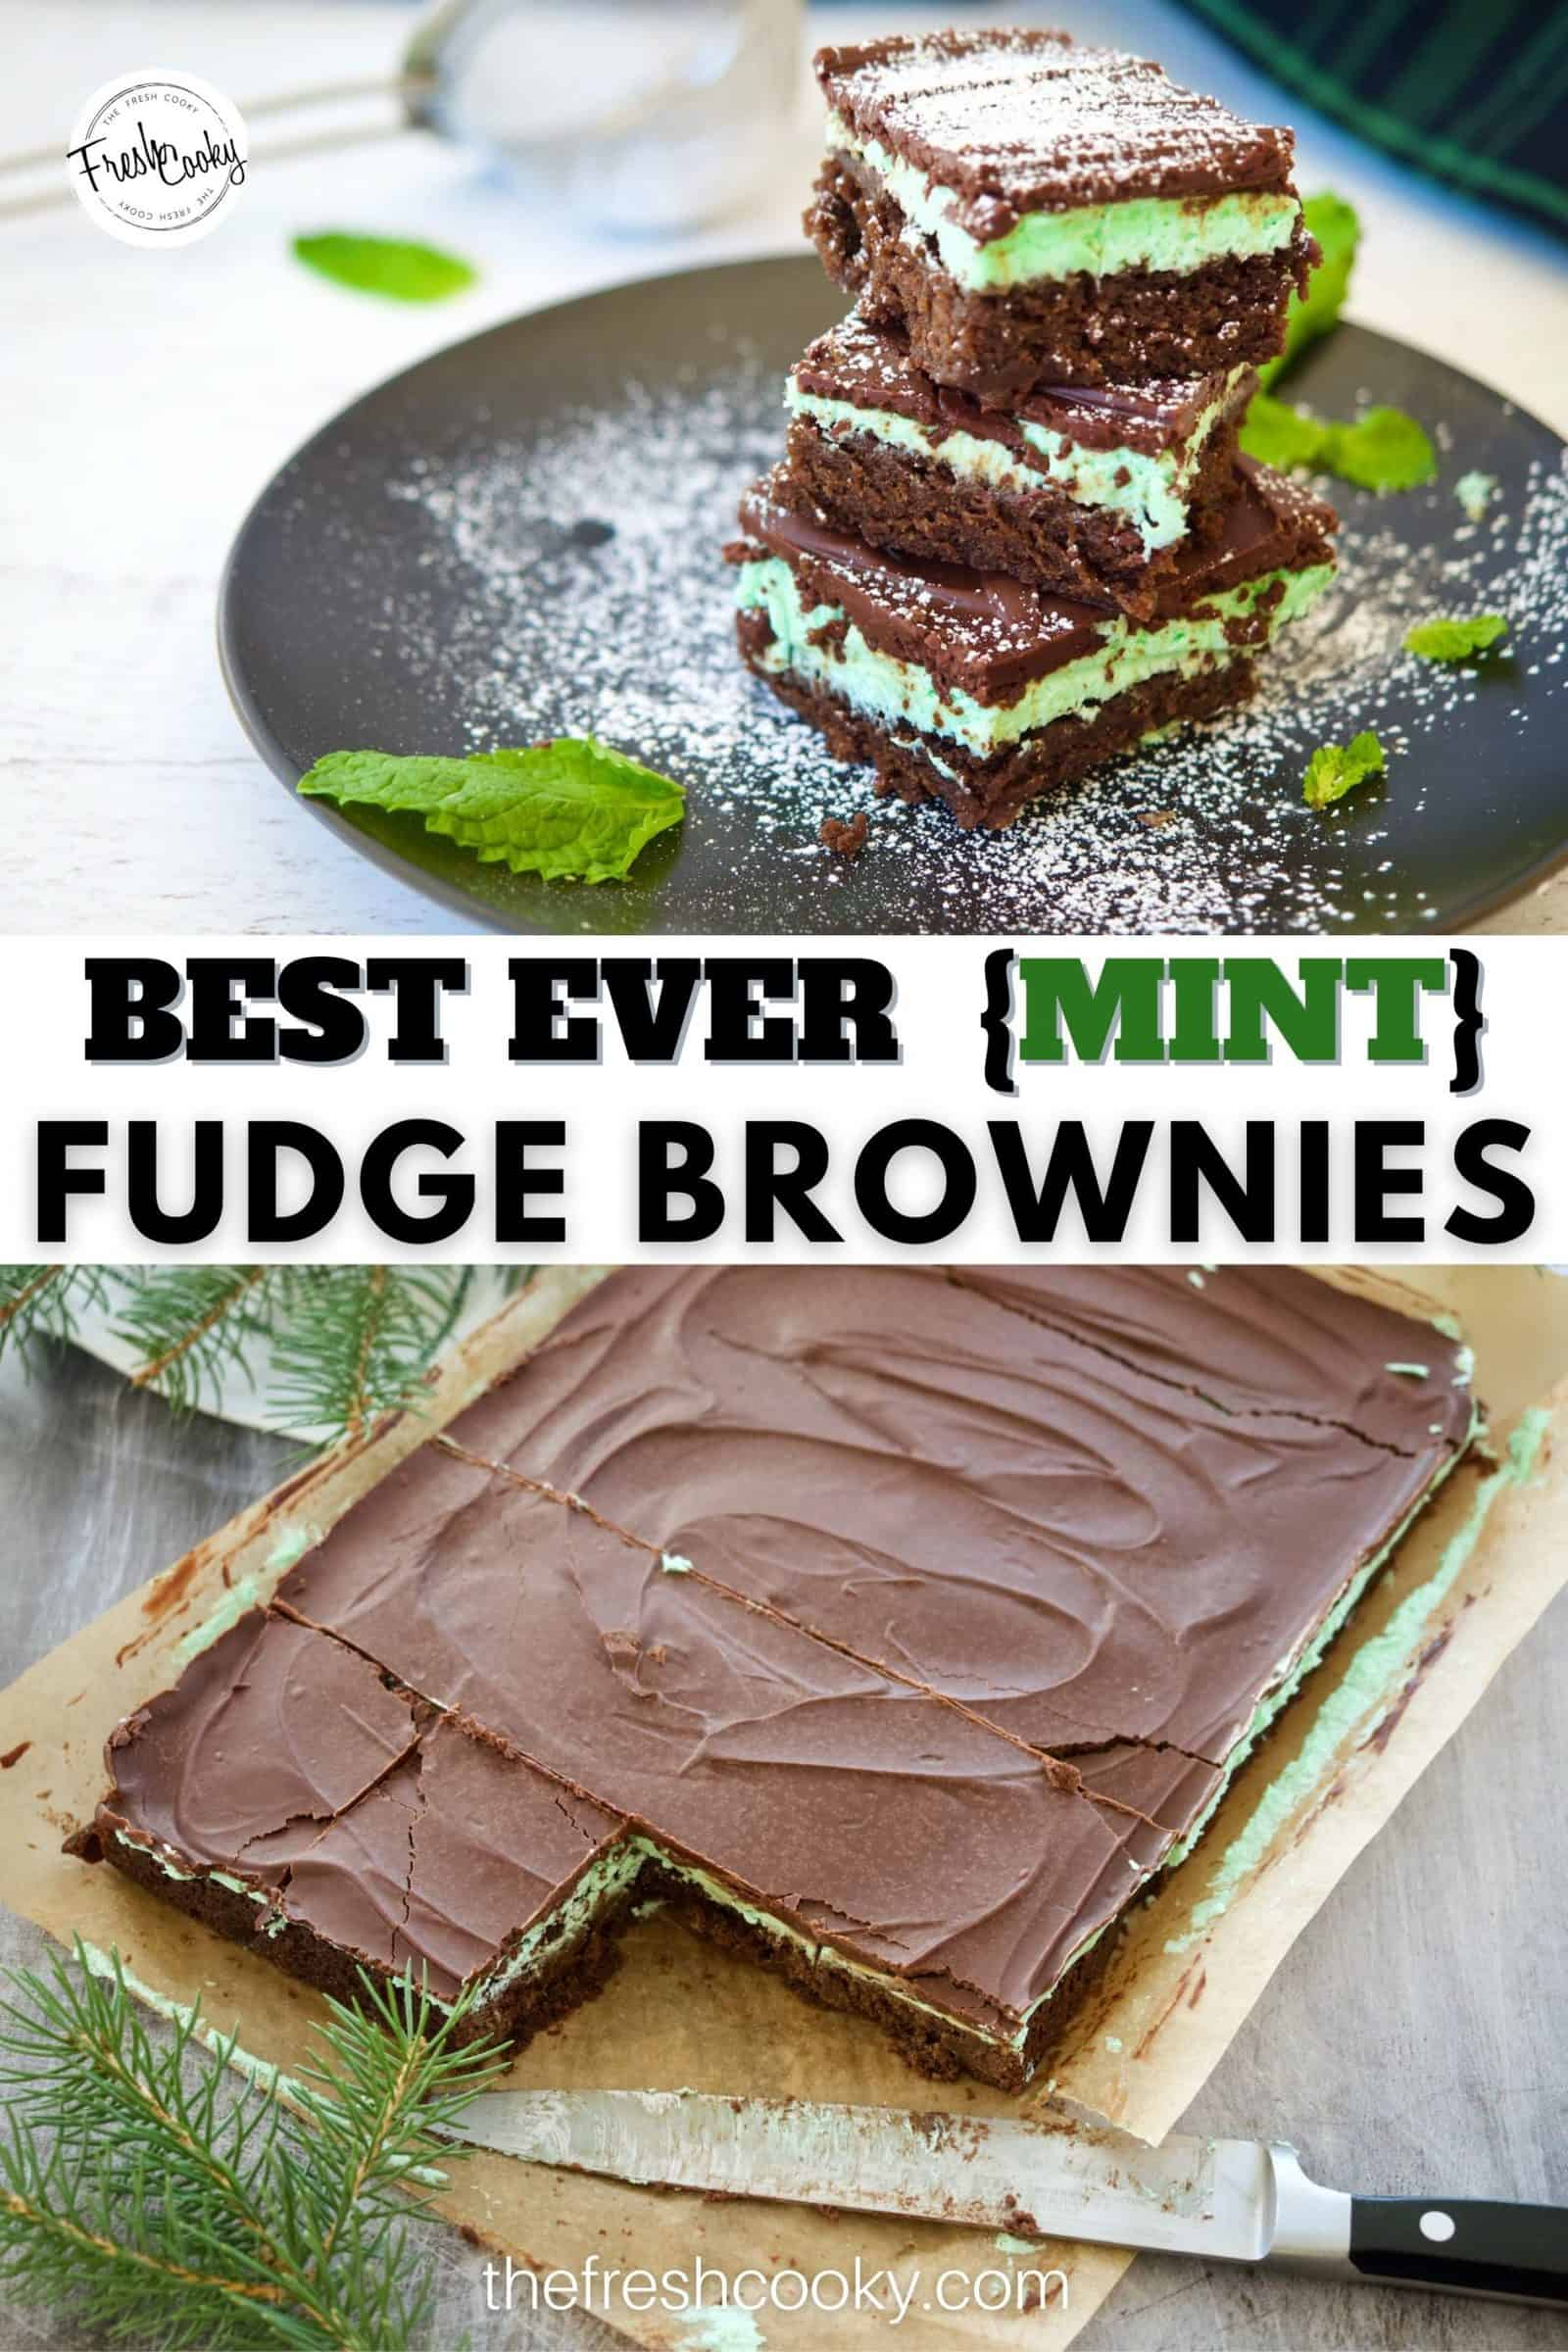 Grab your mixer, you are going to love these easy layered mint fudge brownies. Using Hershey's syrup, creme de menthe and chocolate chips, they are rich and decadent! Great for holiday baking gatherings! High altitude adjustments included. #thefreshcooky #grasshopperbrownies #holidayrecipes via @thefreshcooky